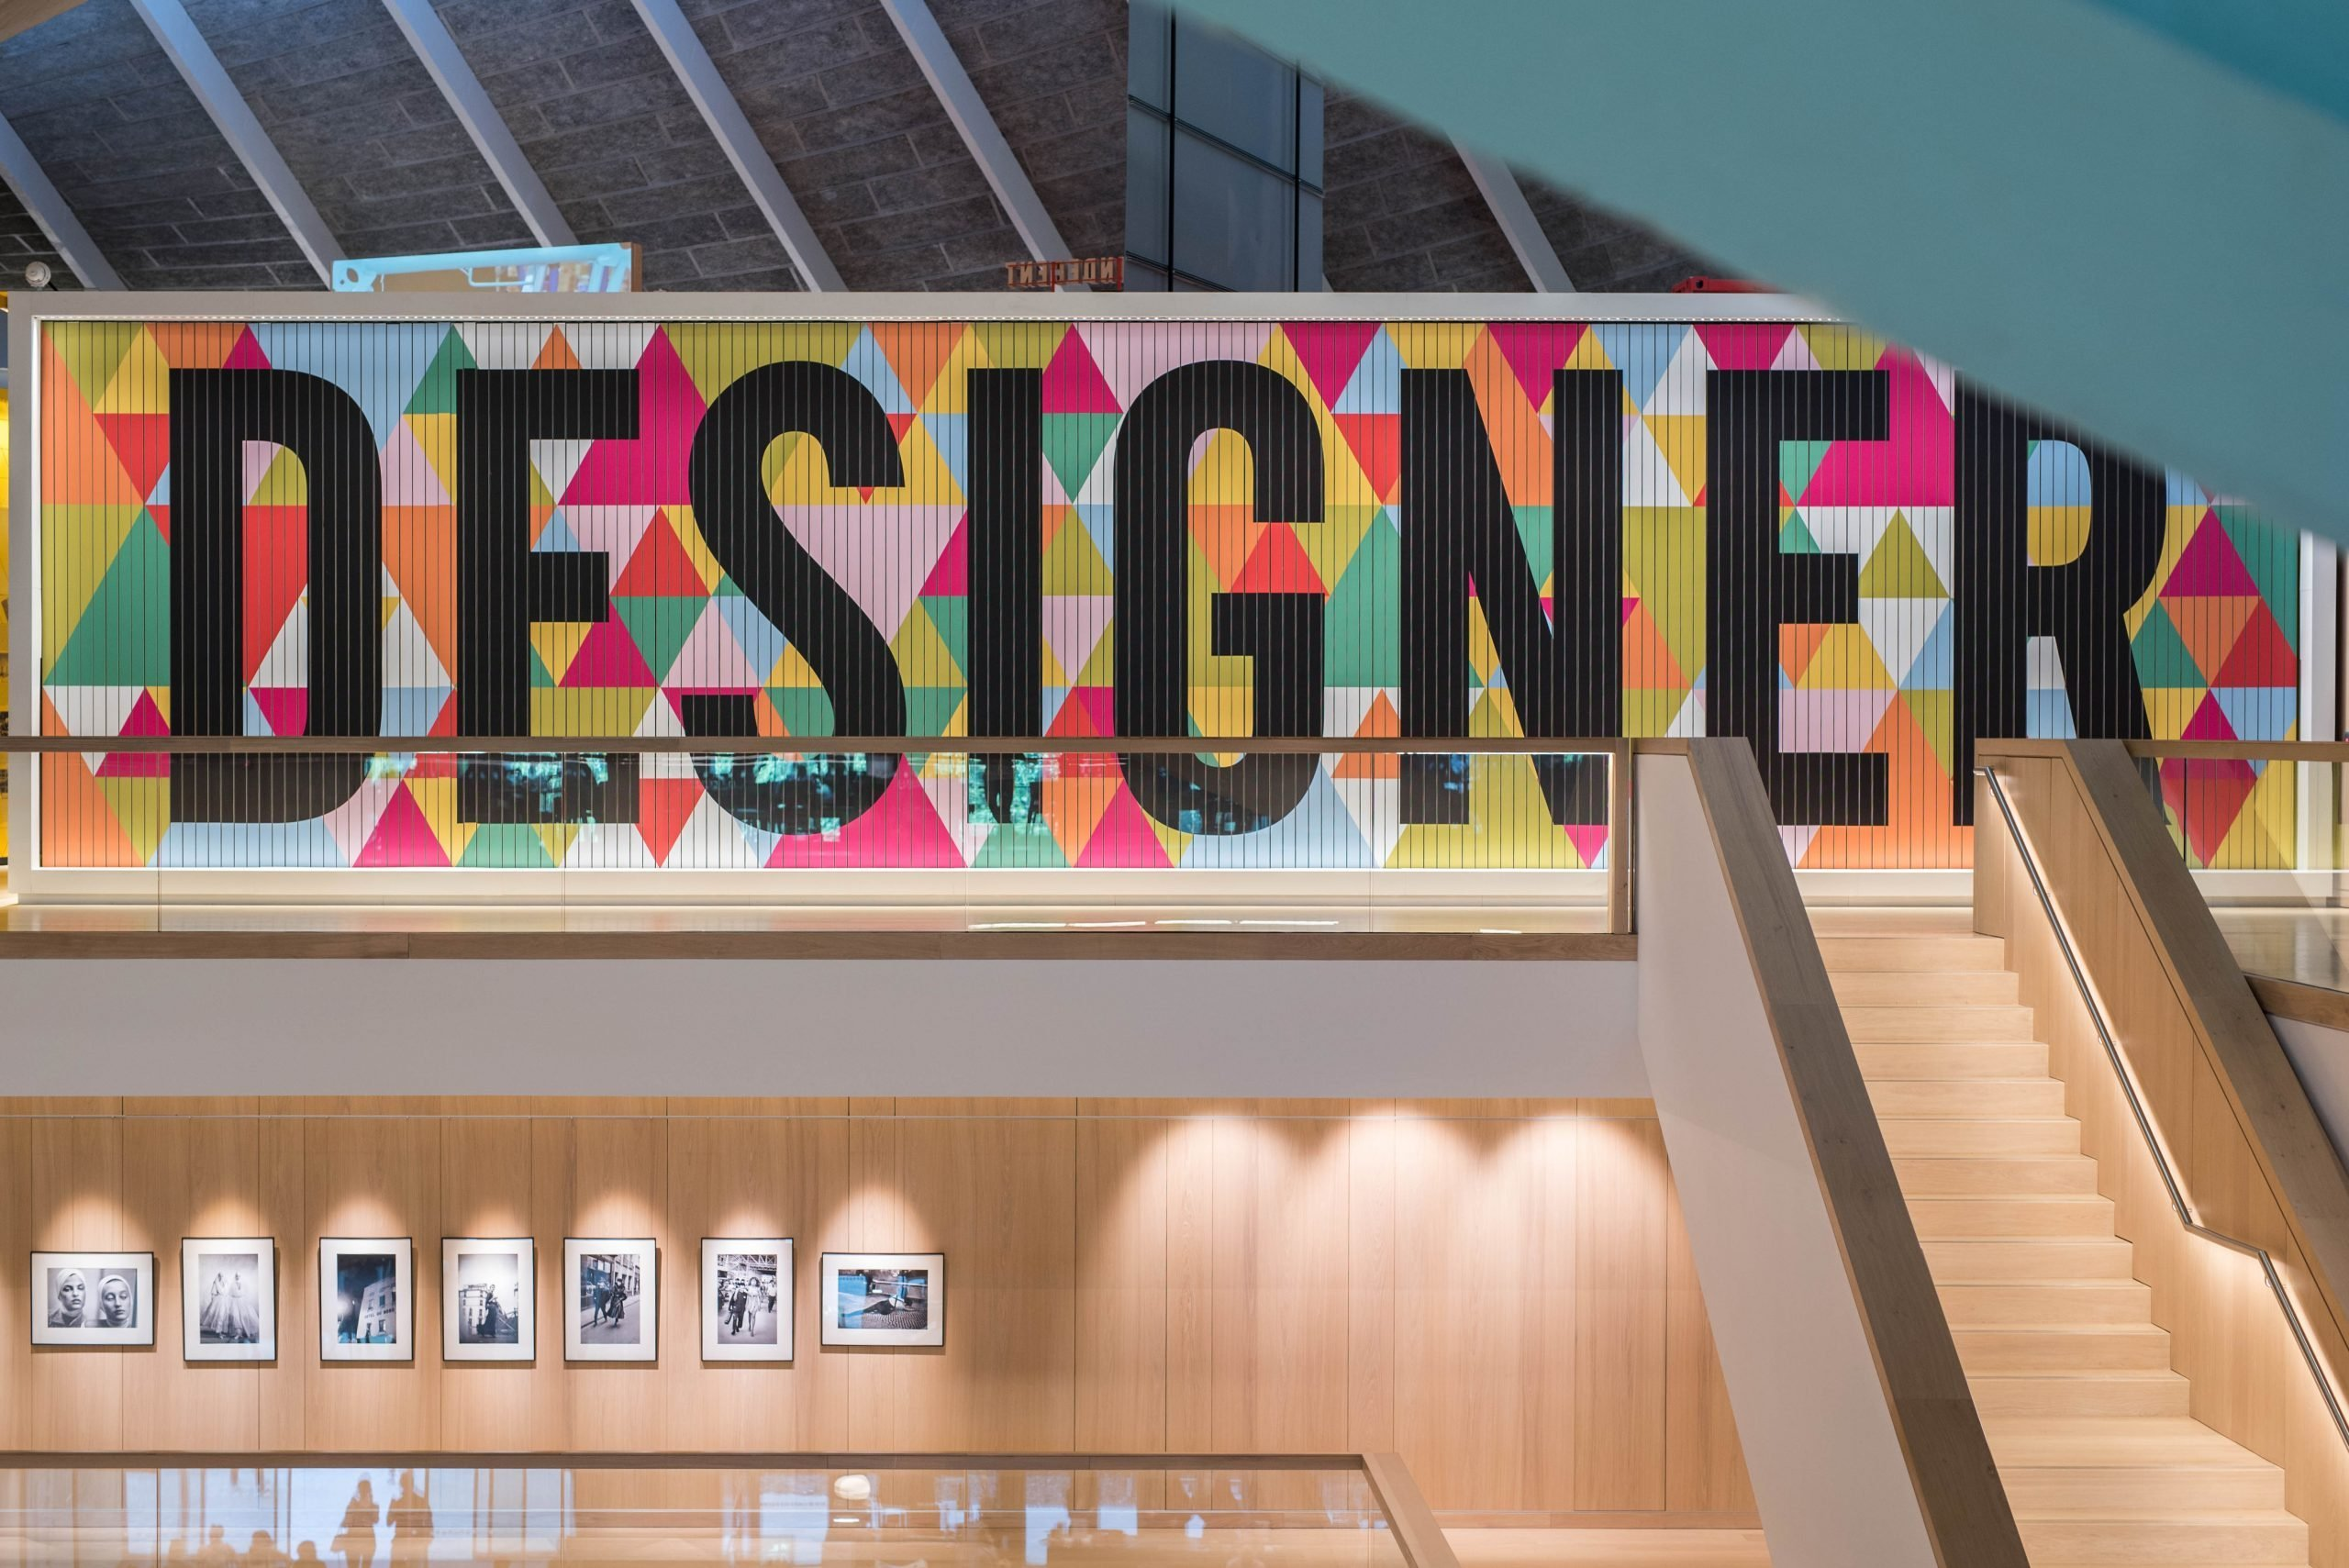 Showing a escalator on the right hand side with the main focus being the wall at the top of the stairs. Large black block letters 'Designer' are in front of a colourful pattern consisting of small triangles. Located in London at the Design Museum